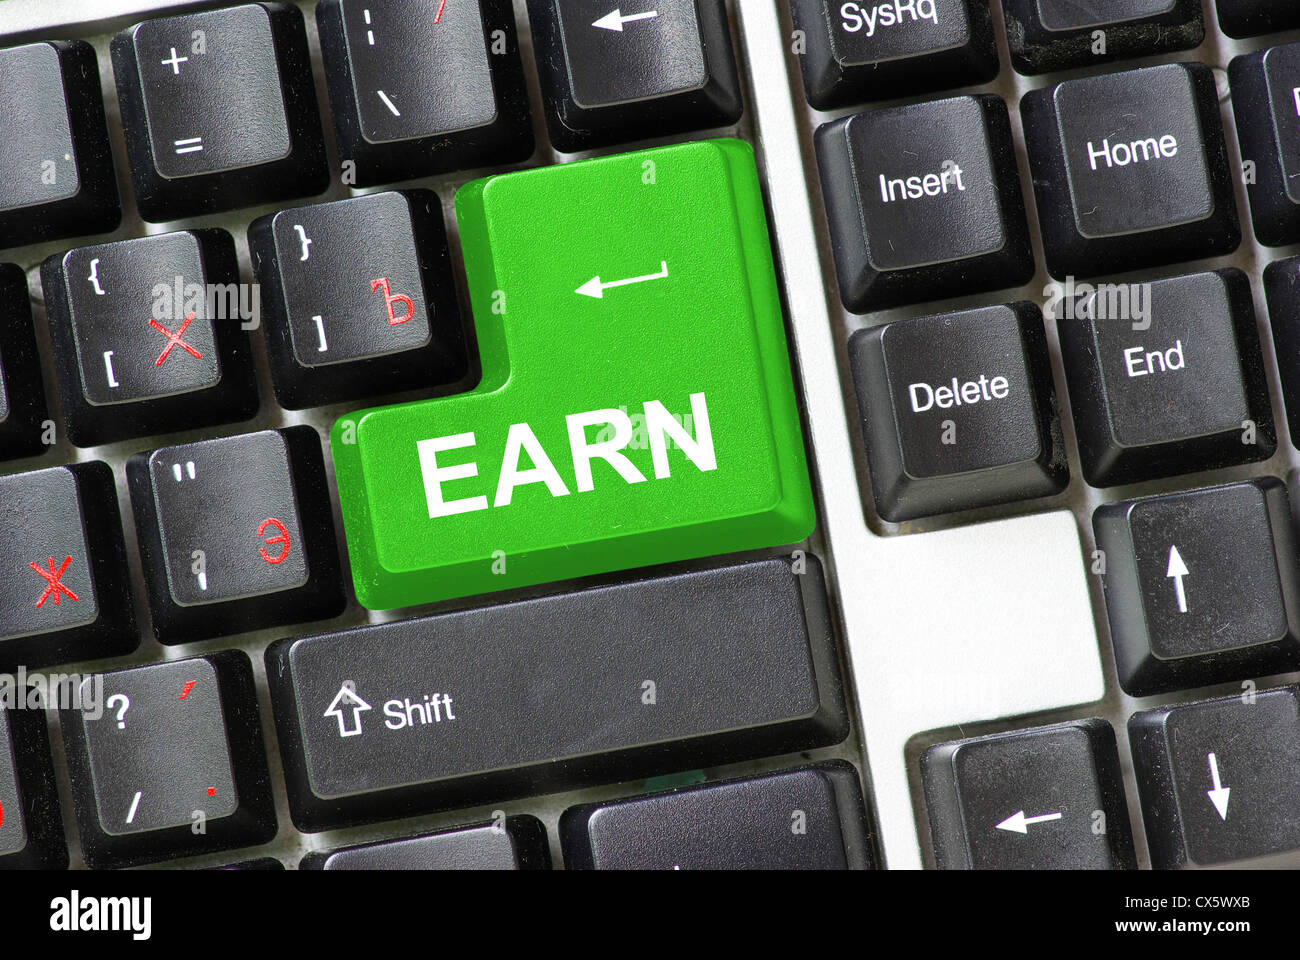 Keyboard with keys for earn - Stock Image